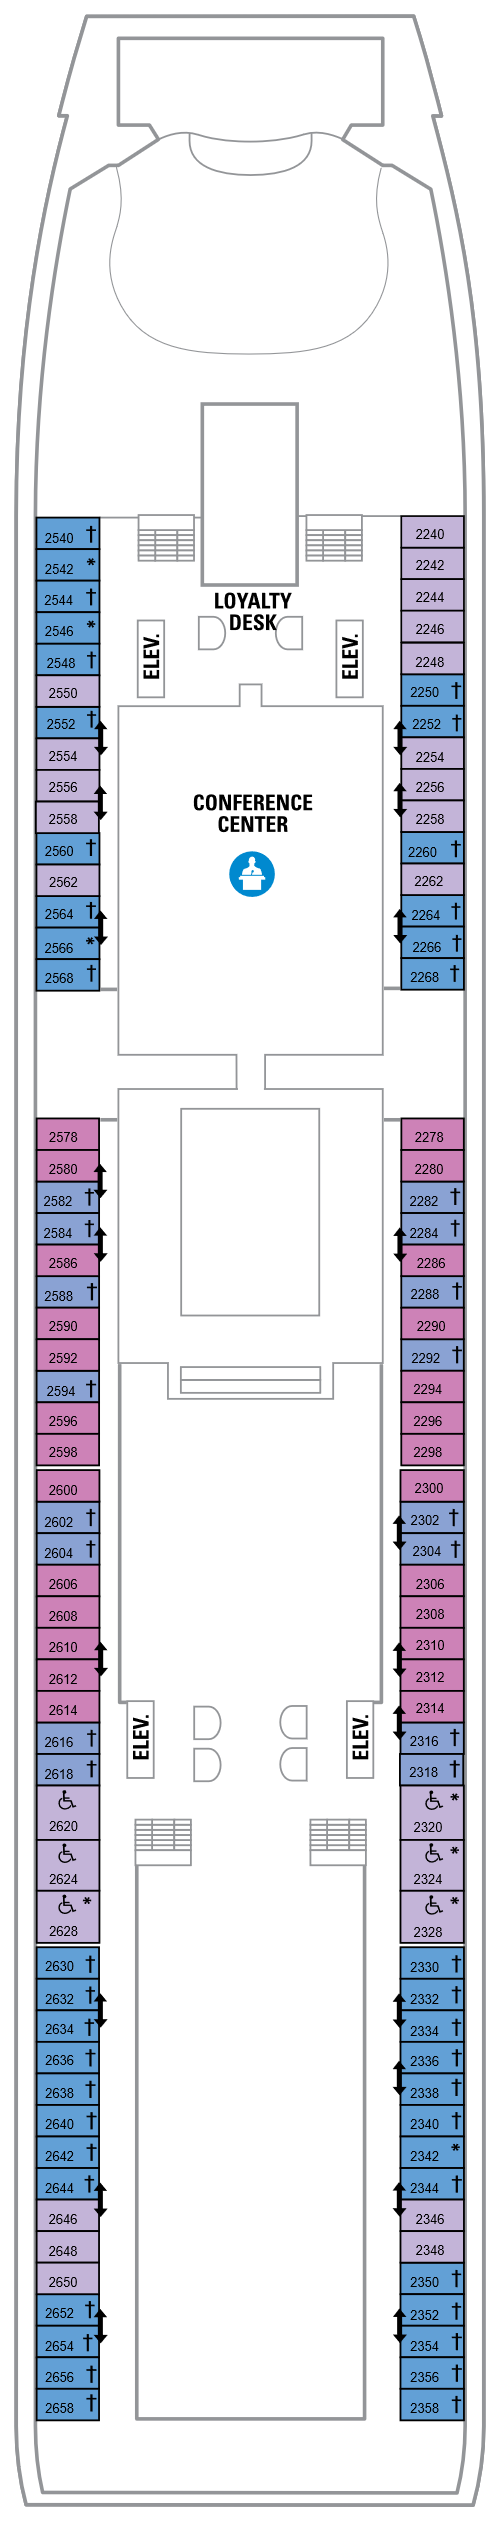 Explorer Of The Seas Deck 2 layout